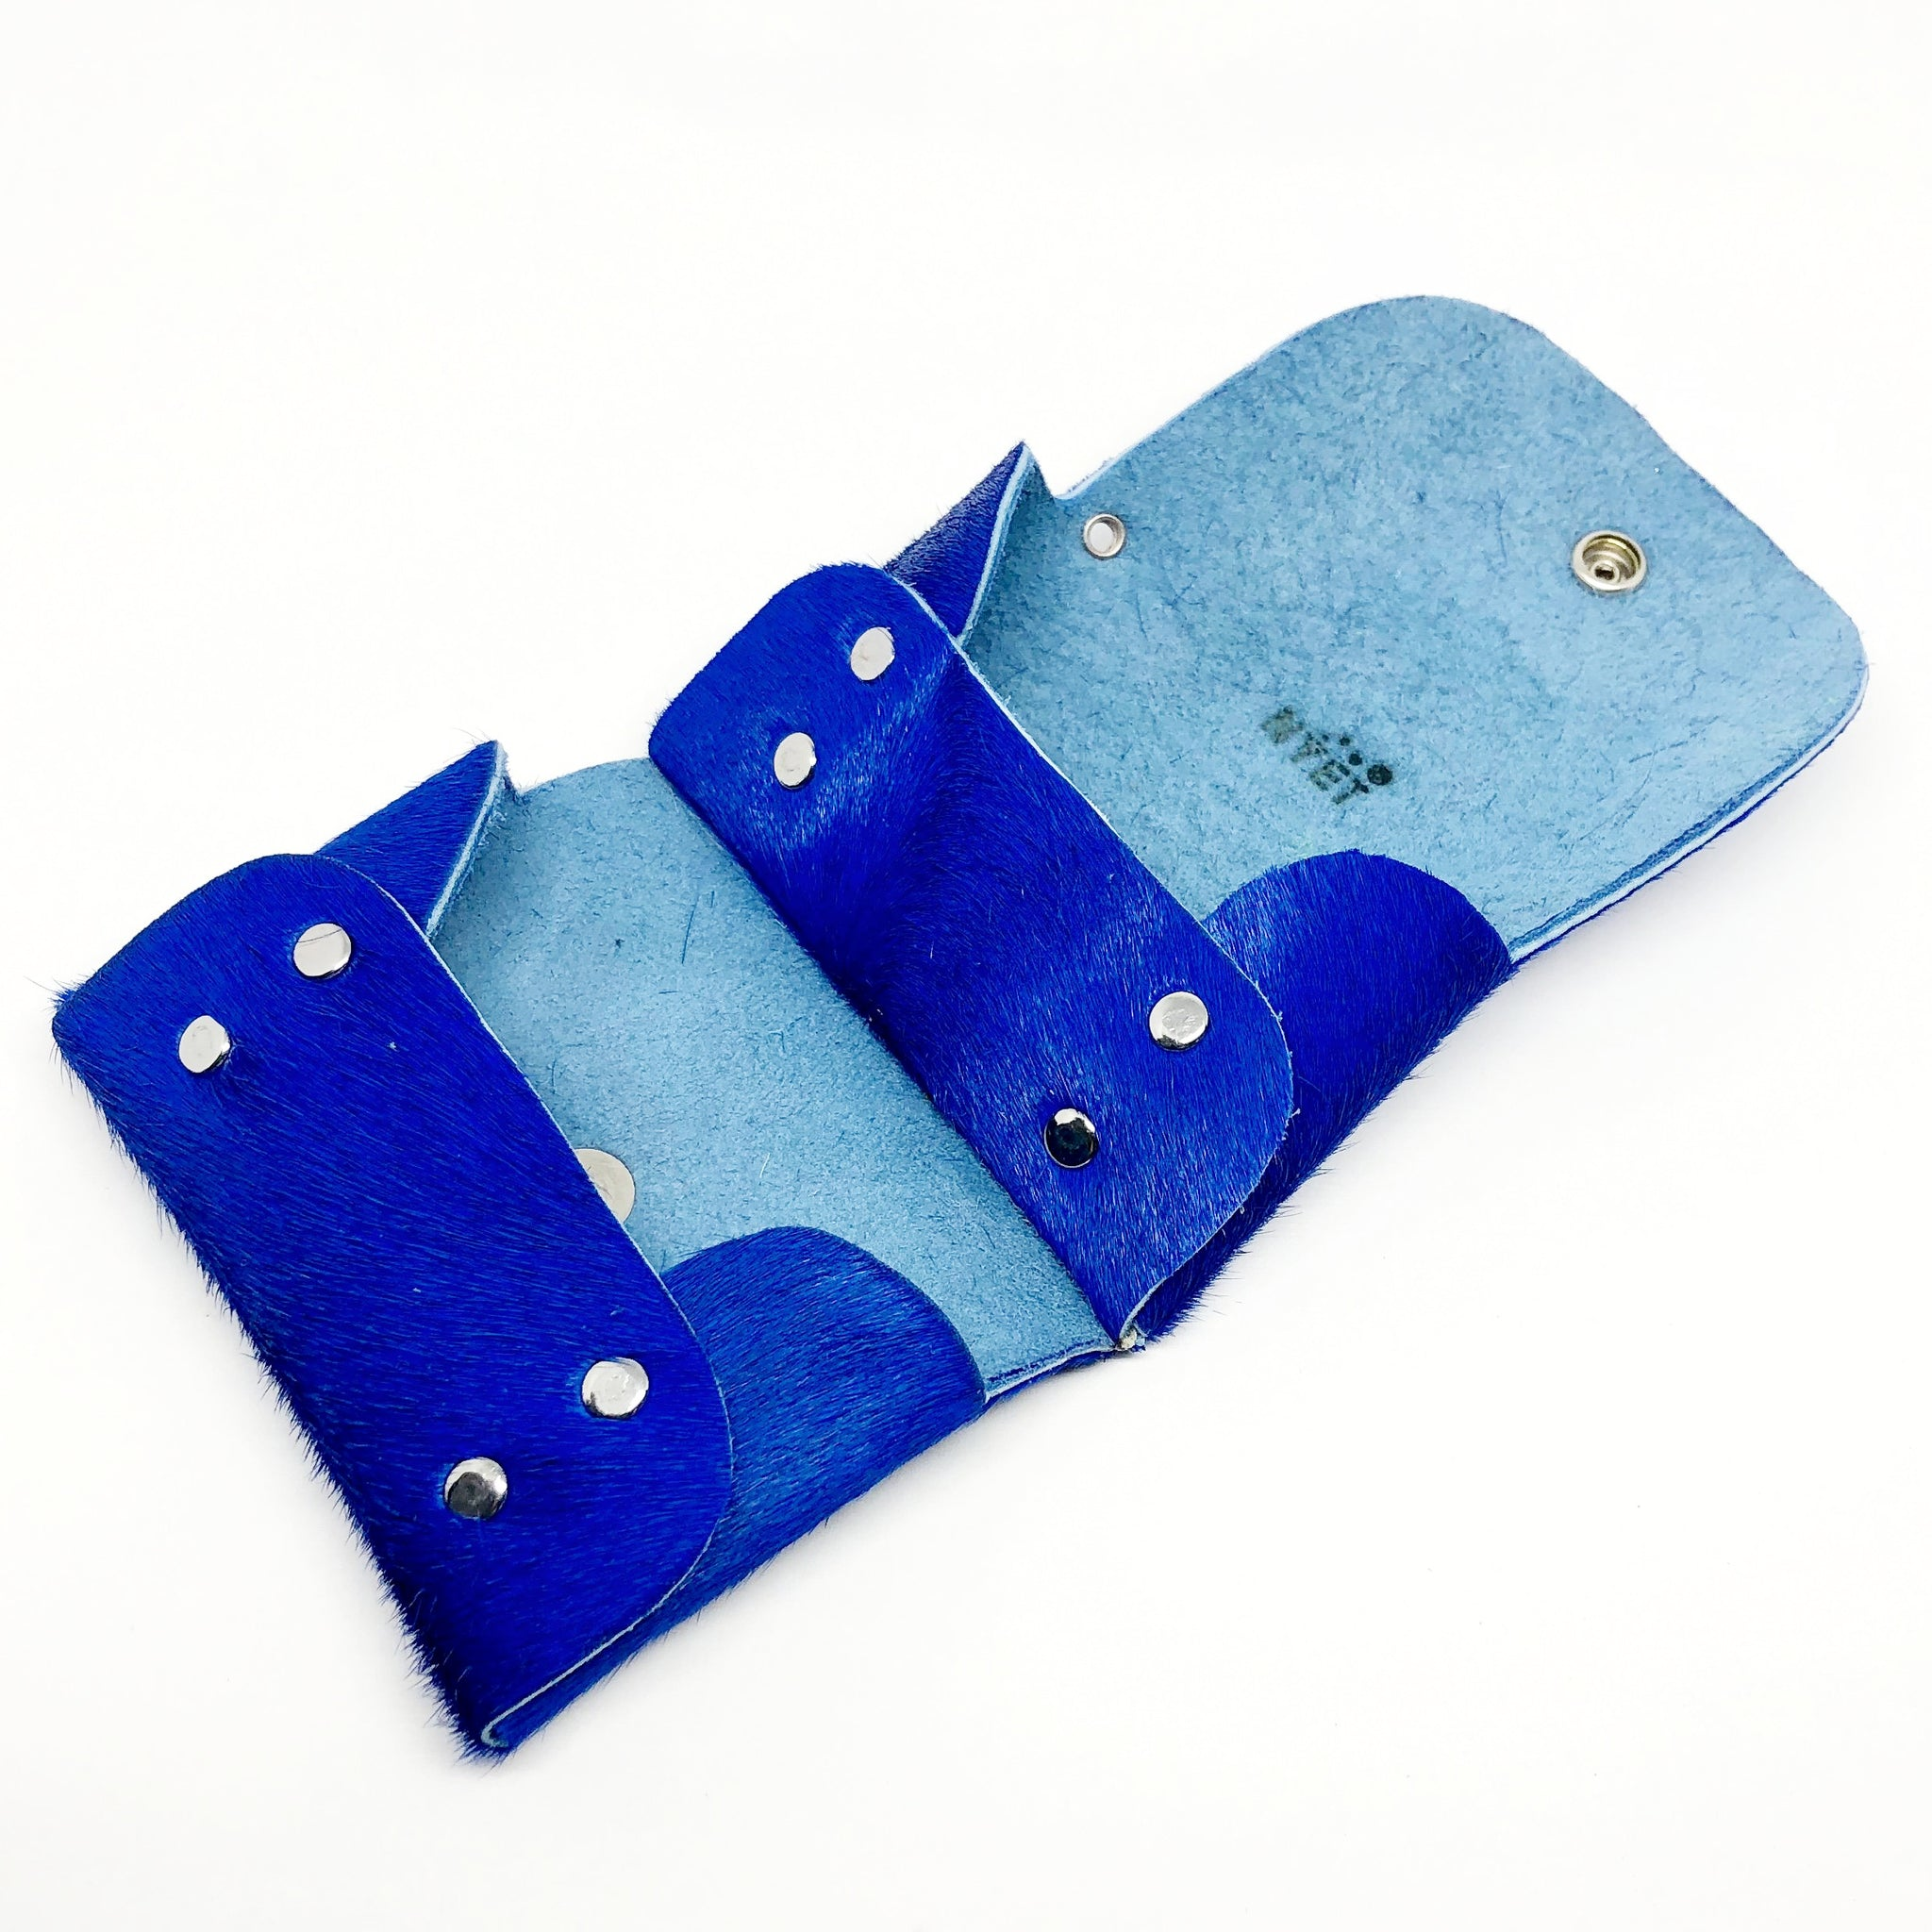 COBALT BLUE HAIR-ON COWHIDE 2-COMPARTMENT WALLET WITH SNAP CLOSURE. by NYET Jewelry.